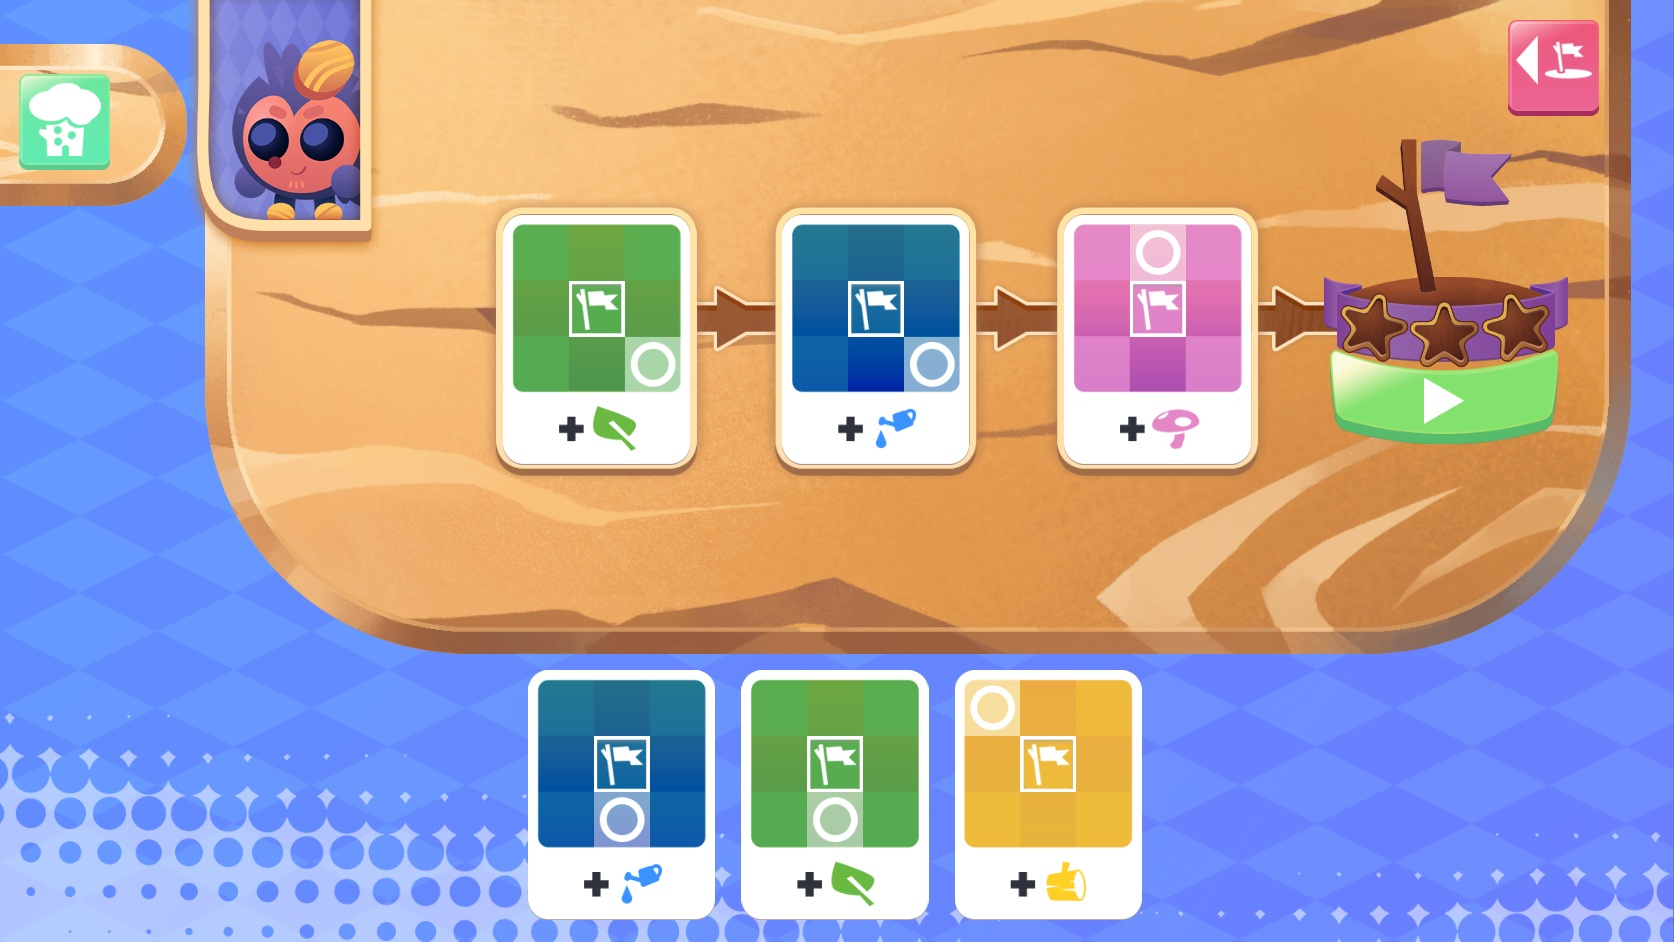 Players program creatures by placing plant and watering cards into their state machines.